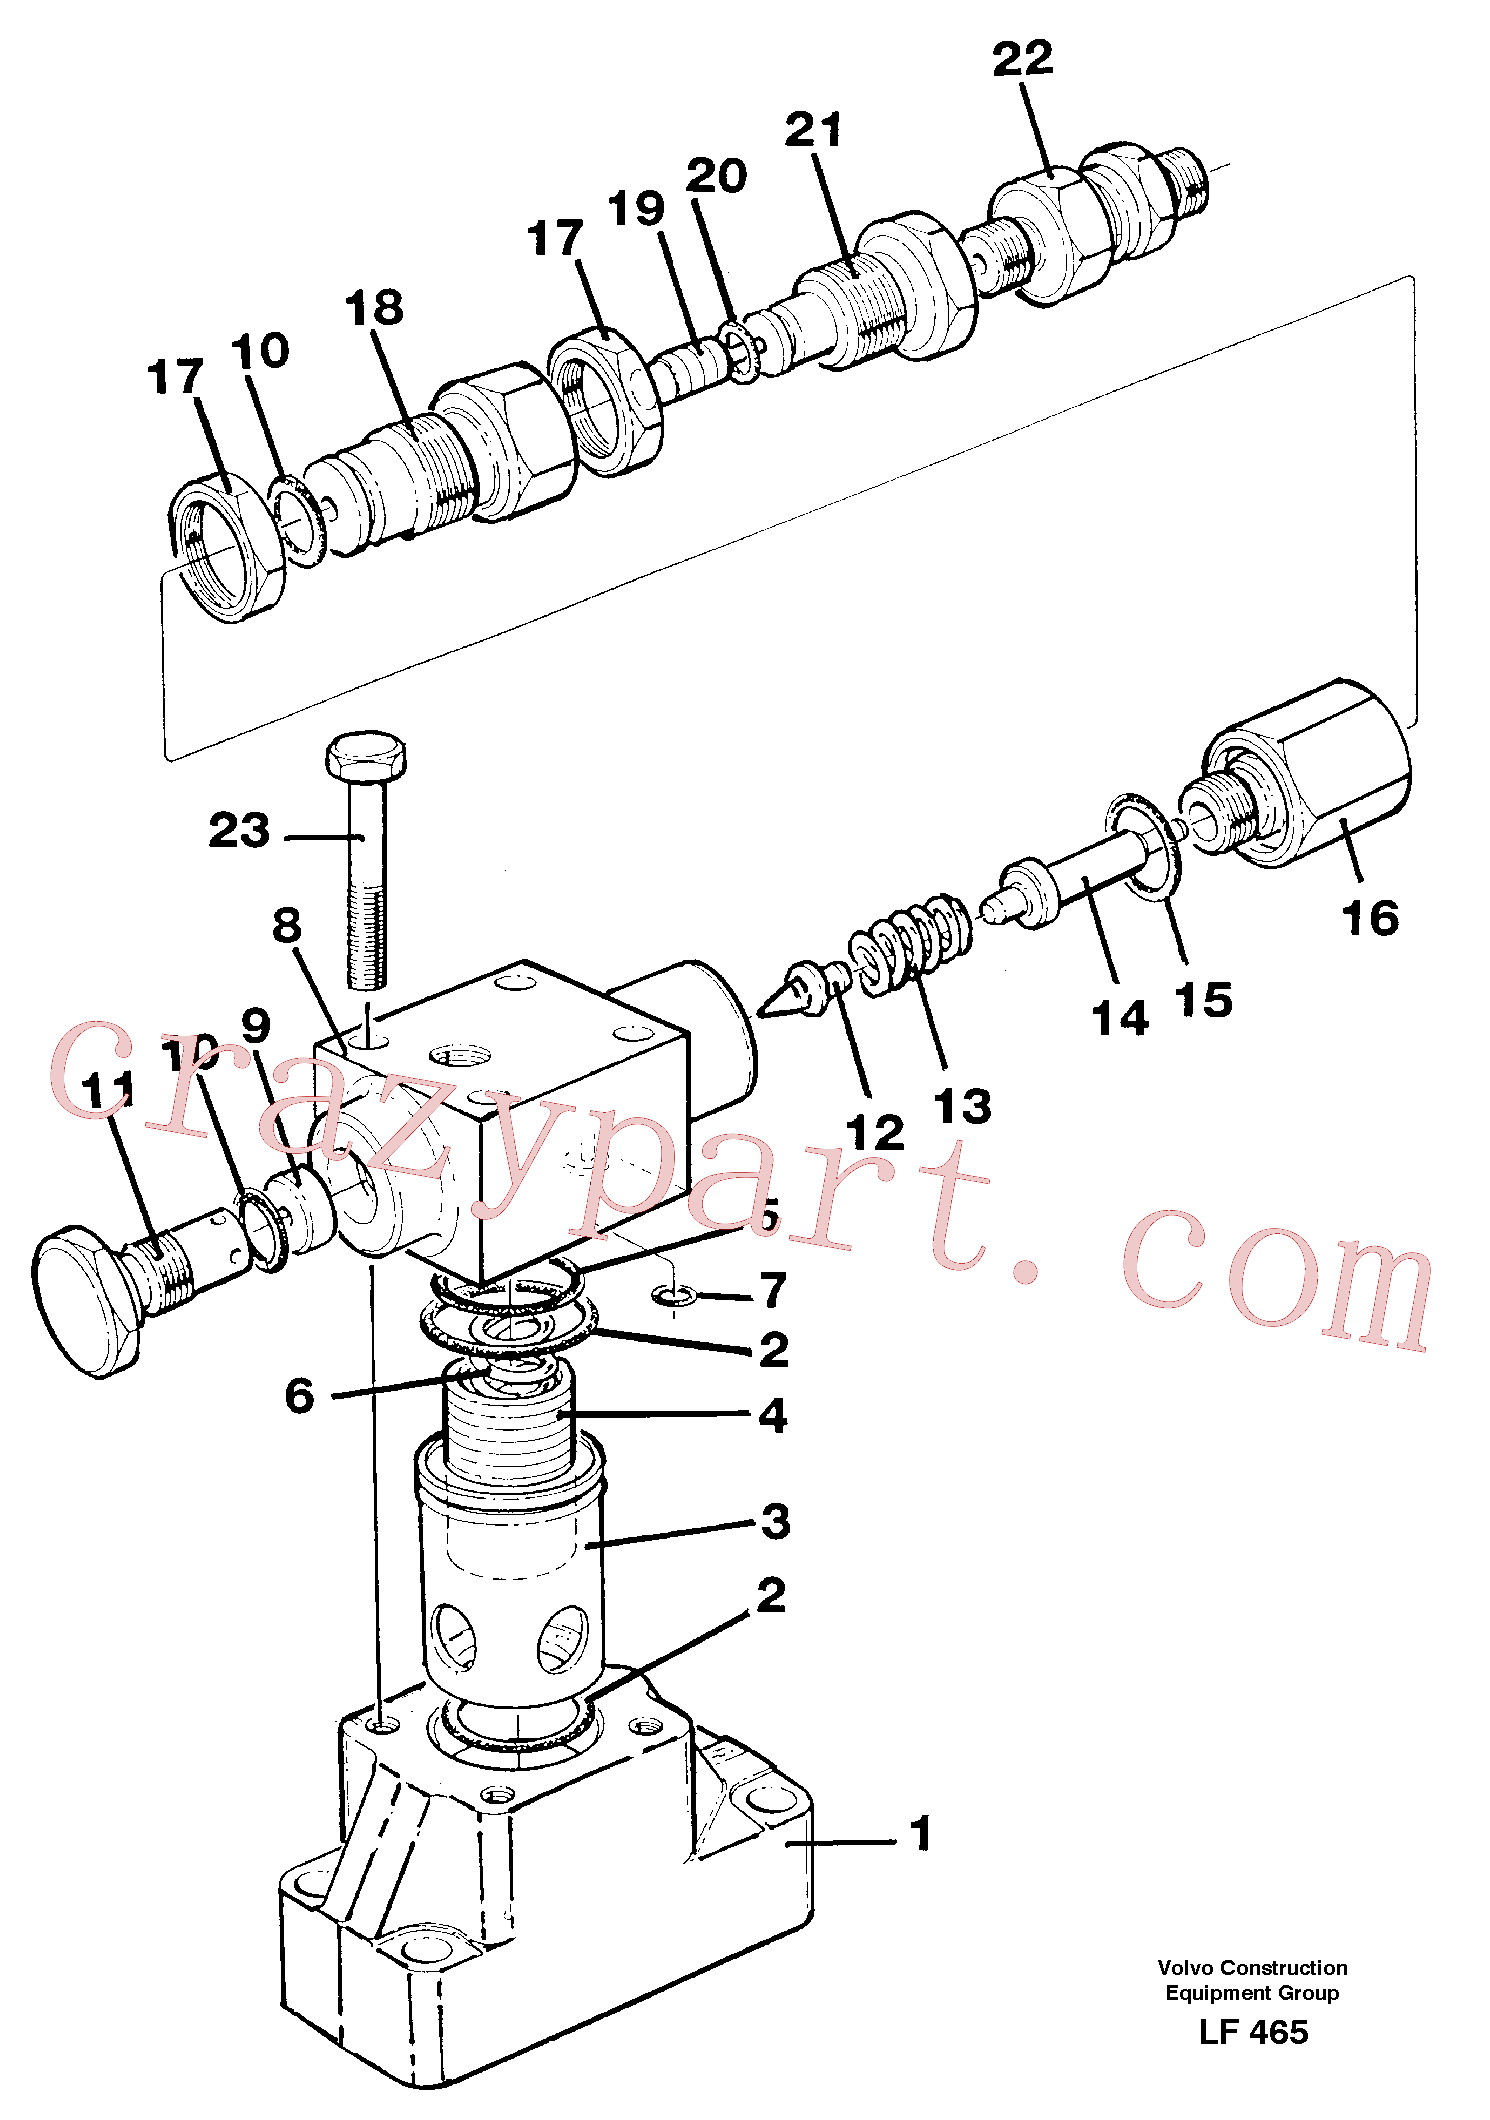 VOE14235611 for Volvo Pressure limiting valve(LF465 assembly)